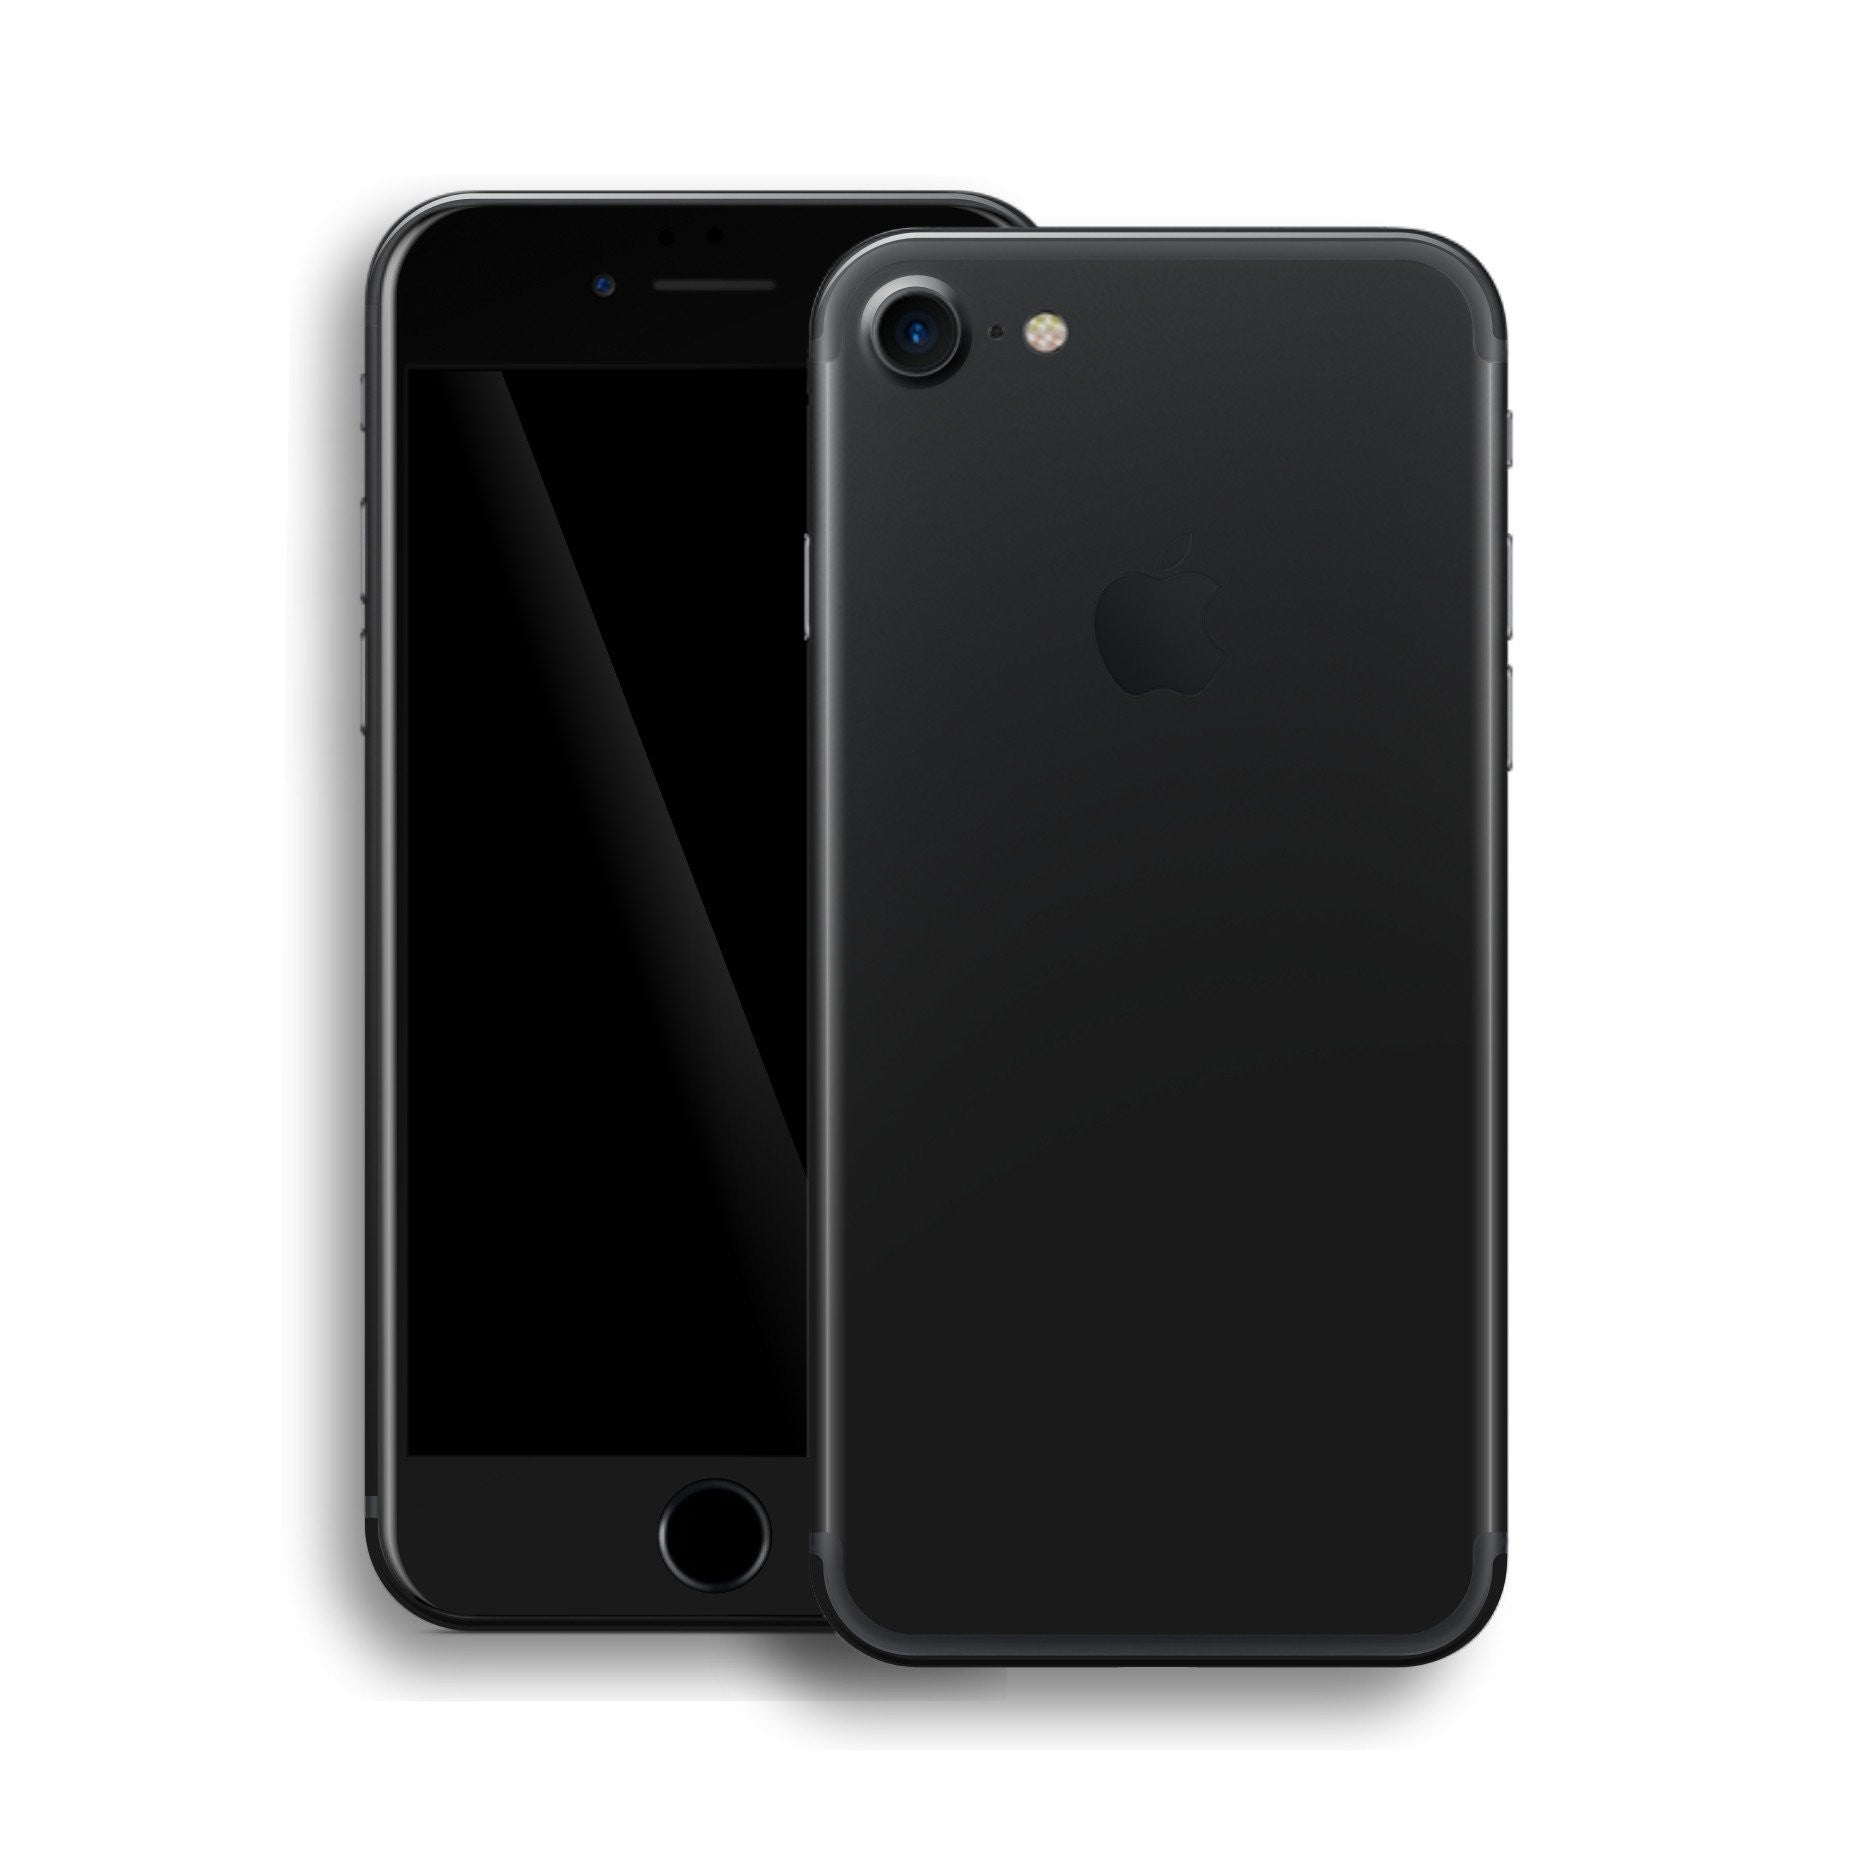 iPhone 7 DEEP BLACK Matt Skin Wrap Decal Protector | EasySkinz